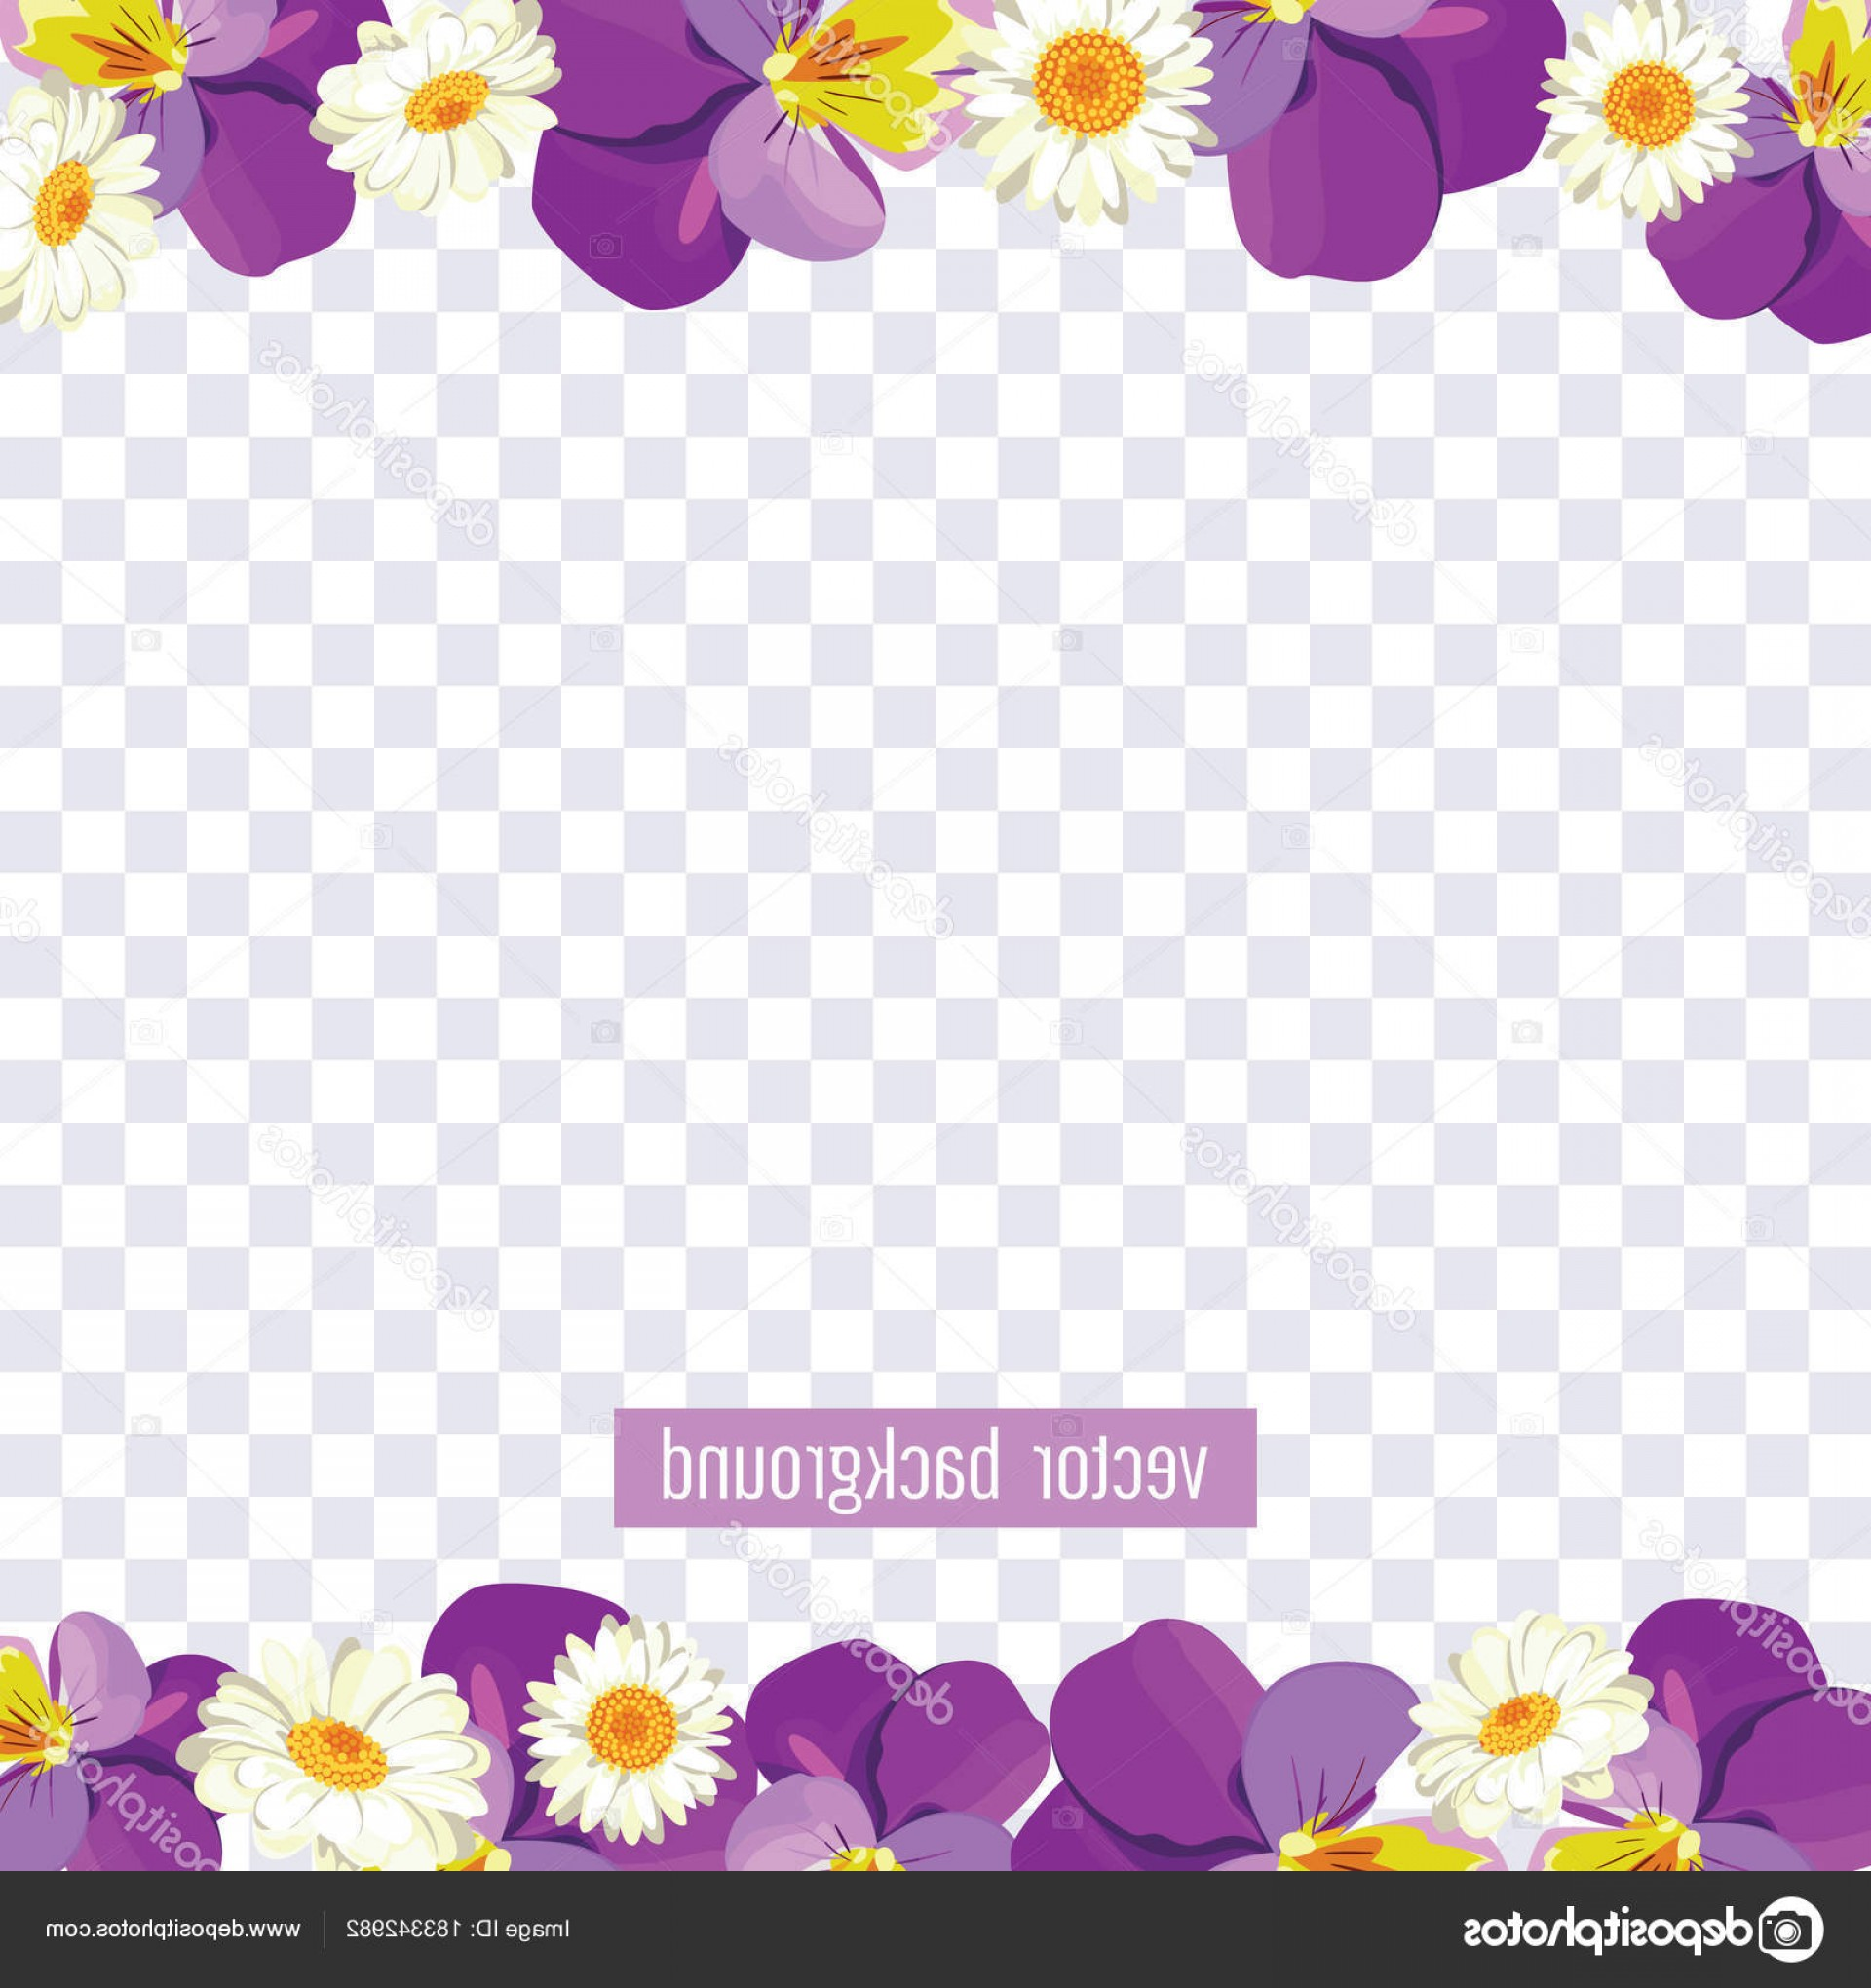 Vector Background Clip Art: Stock Illustration Floral Borders On Transparent Background